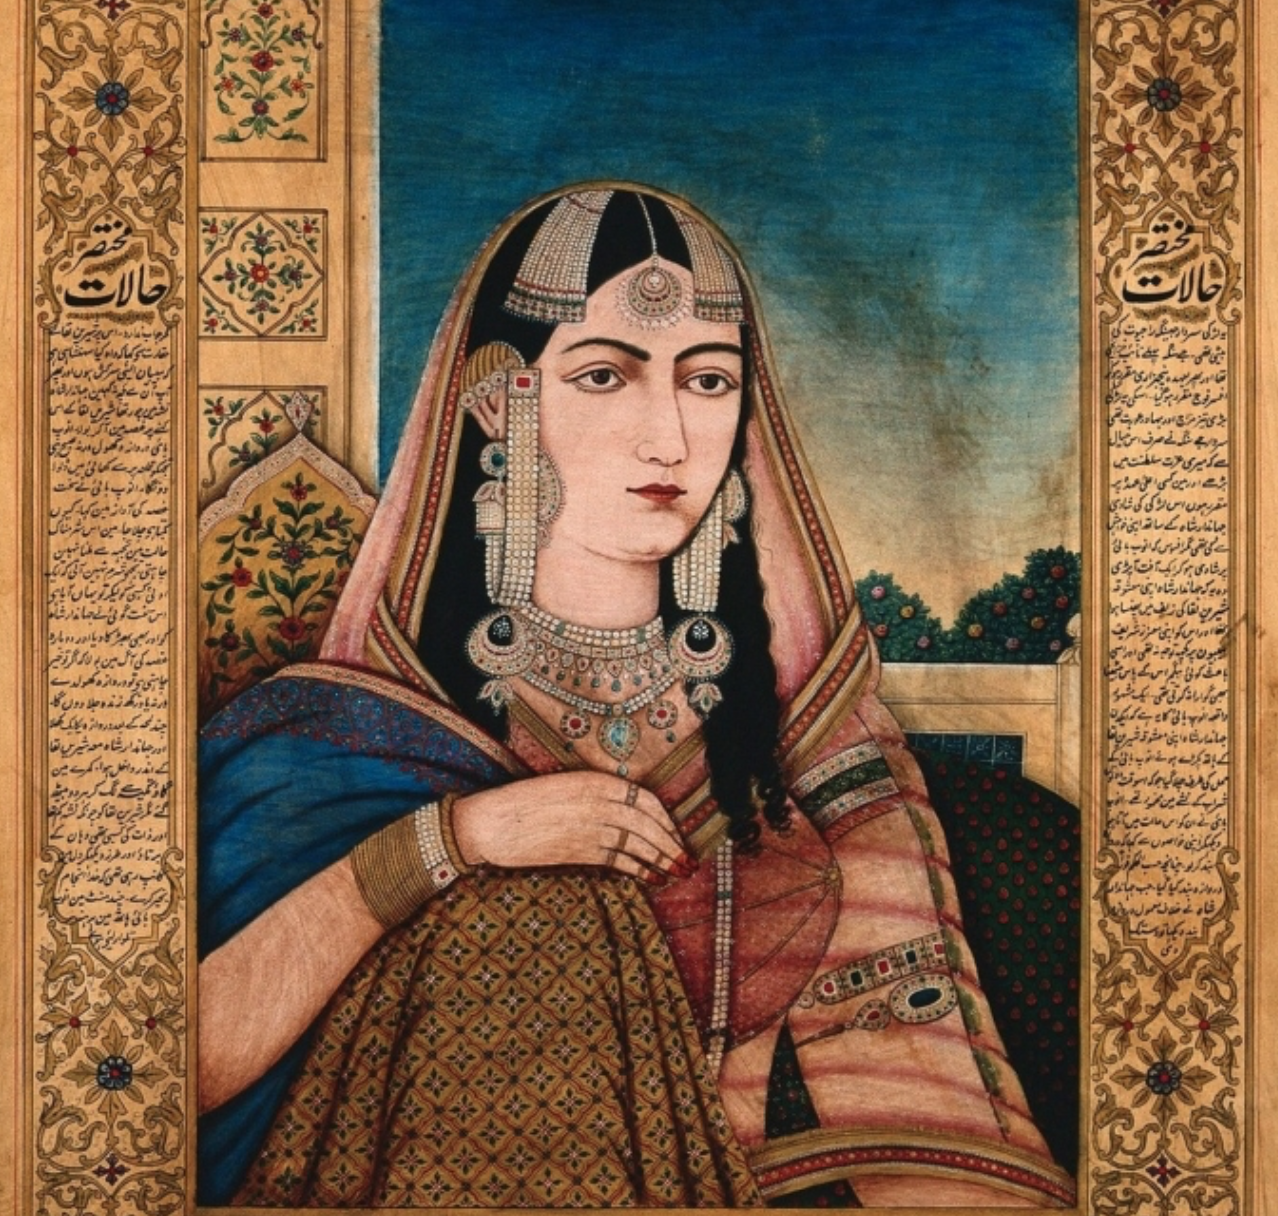 Image of a Tawaif